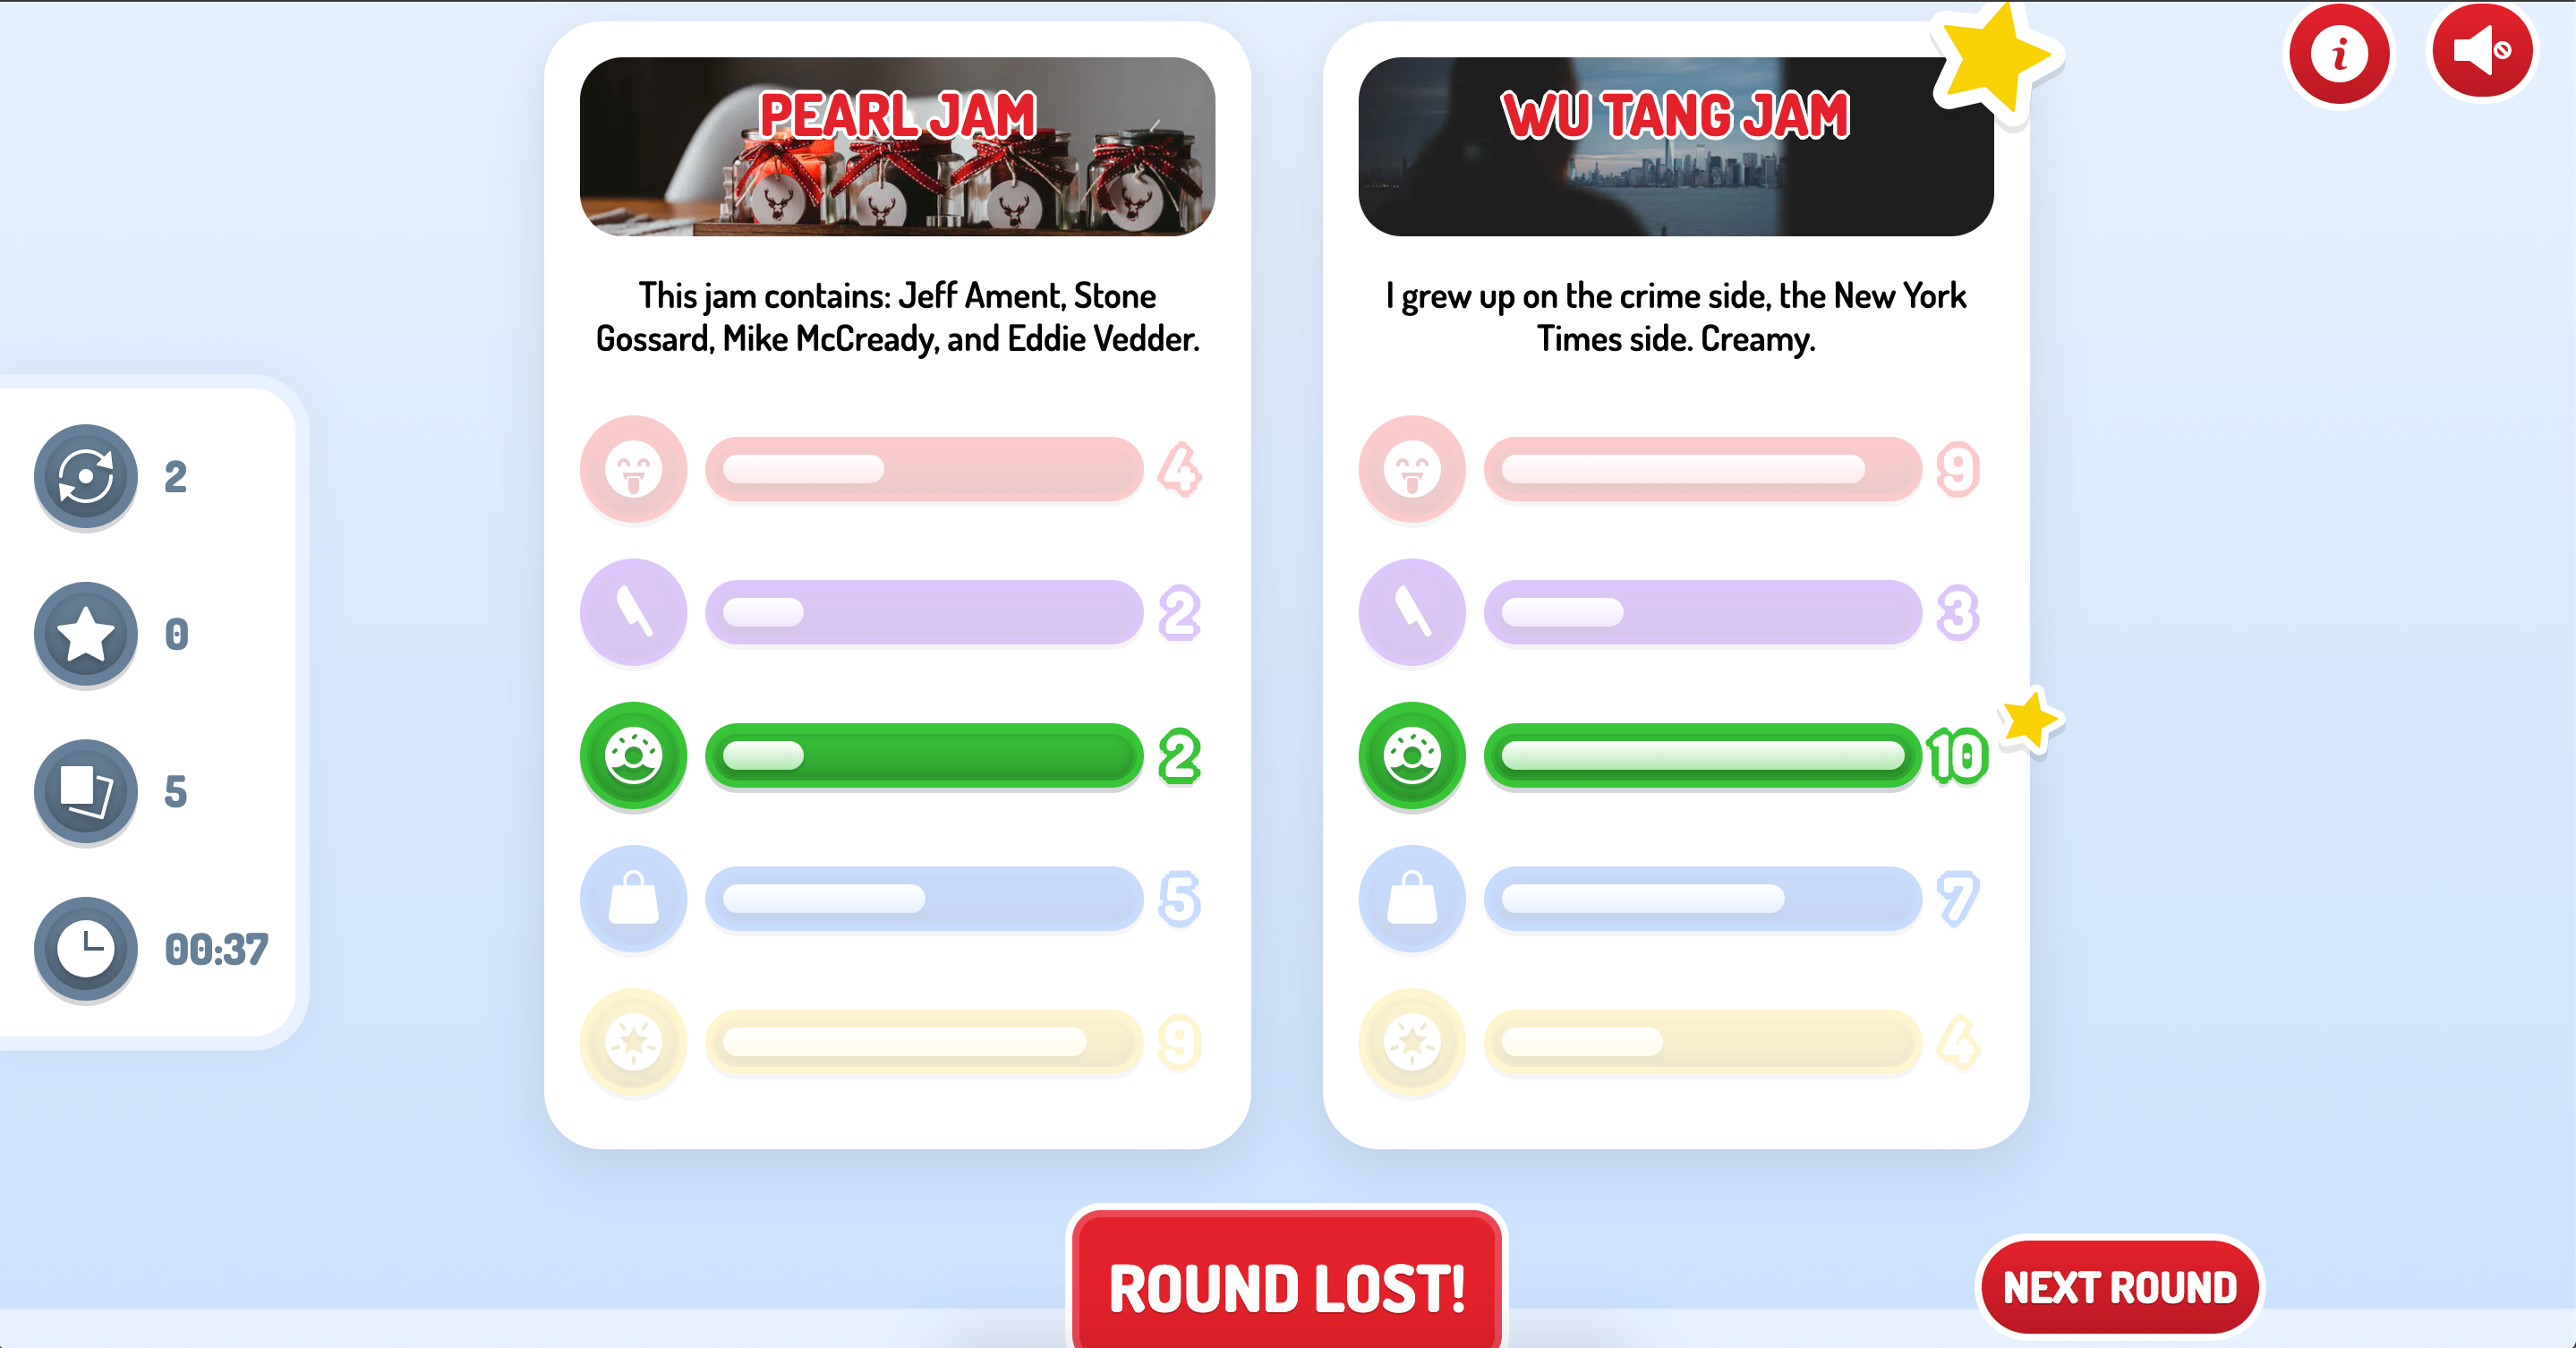 The round results UI of tje Jam Slam game showing which Top Trumps card won.